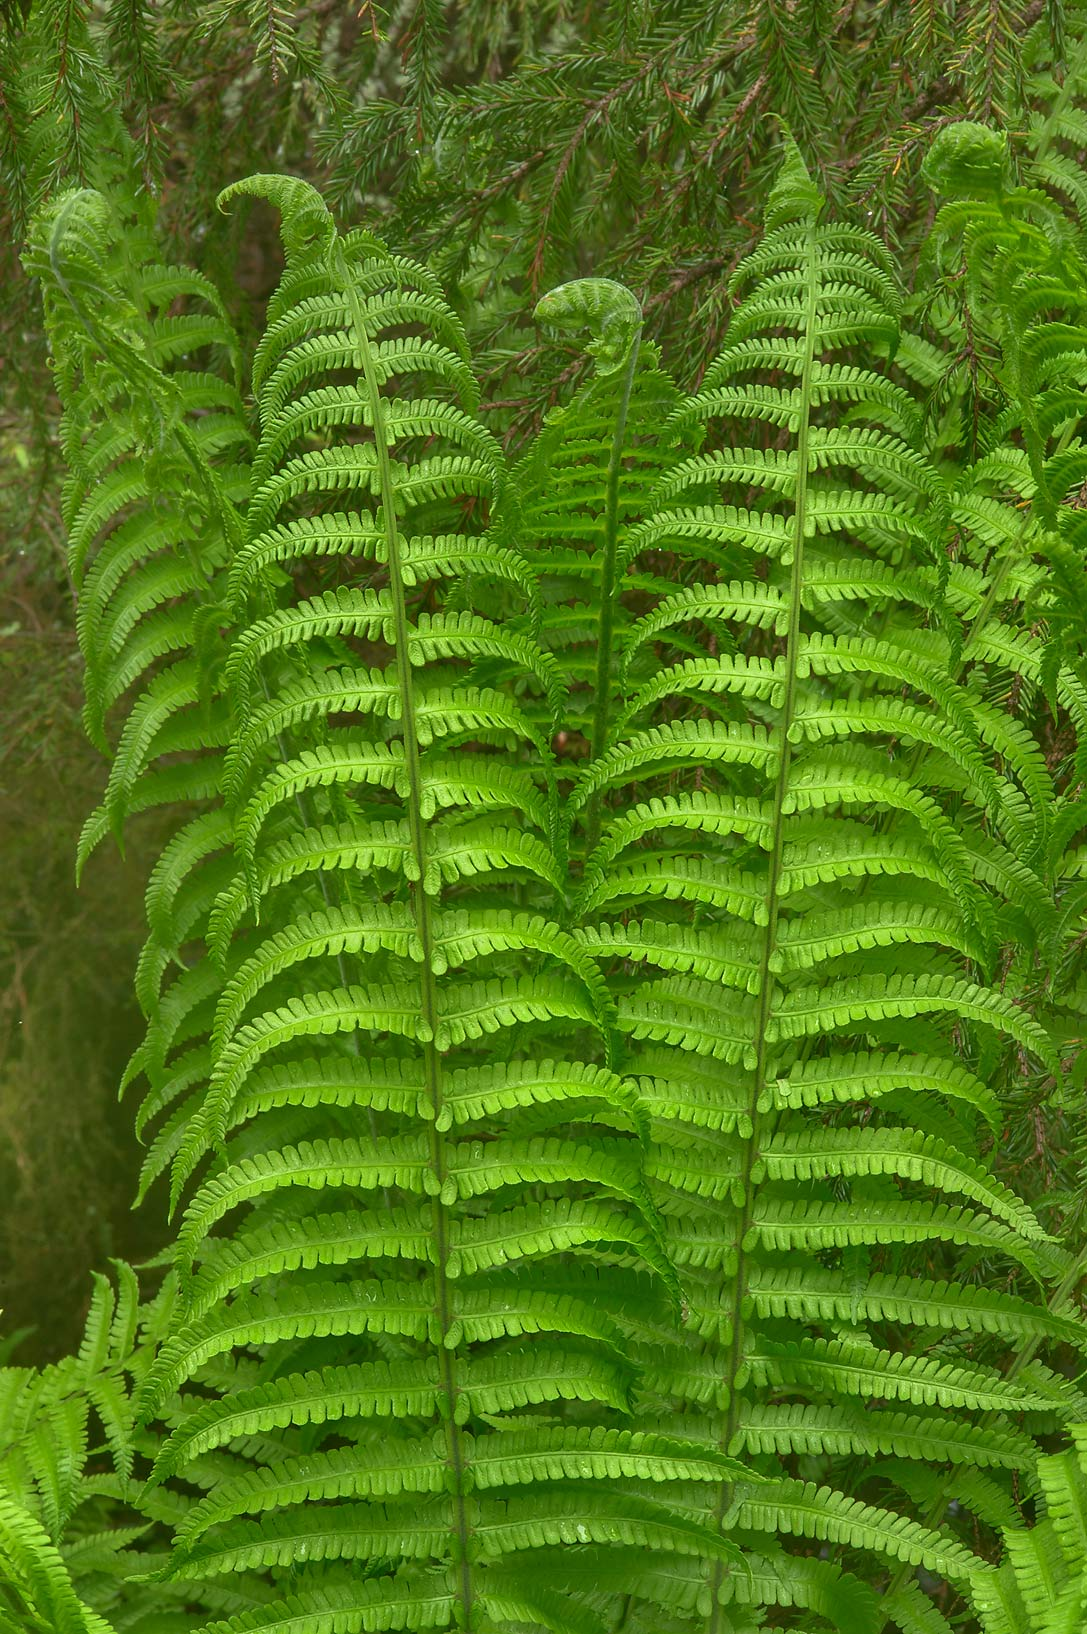 Large leaves of Ostrich fern (Matteuccia...north from St.Petersburg. Russia